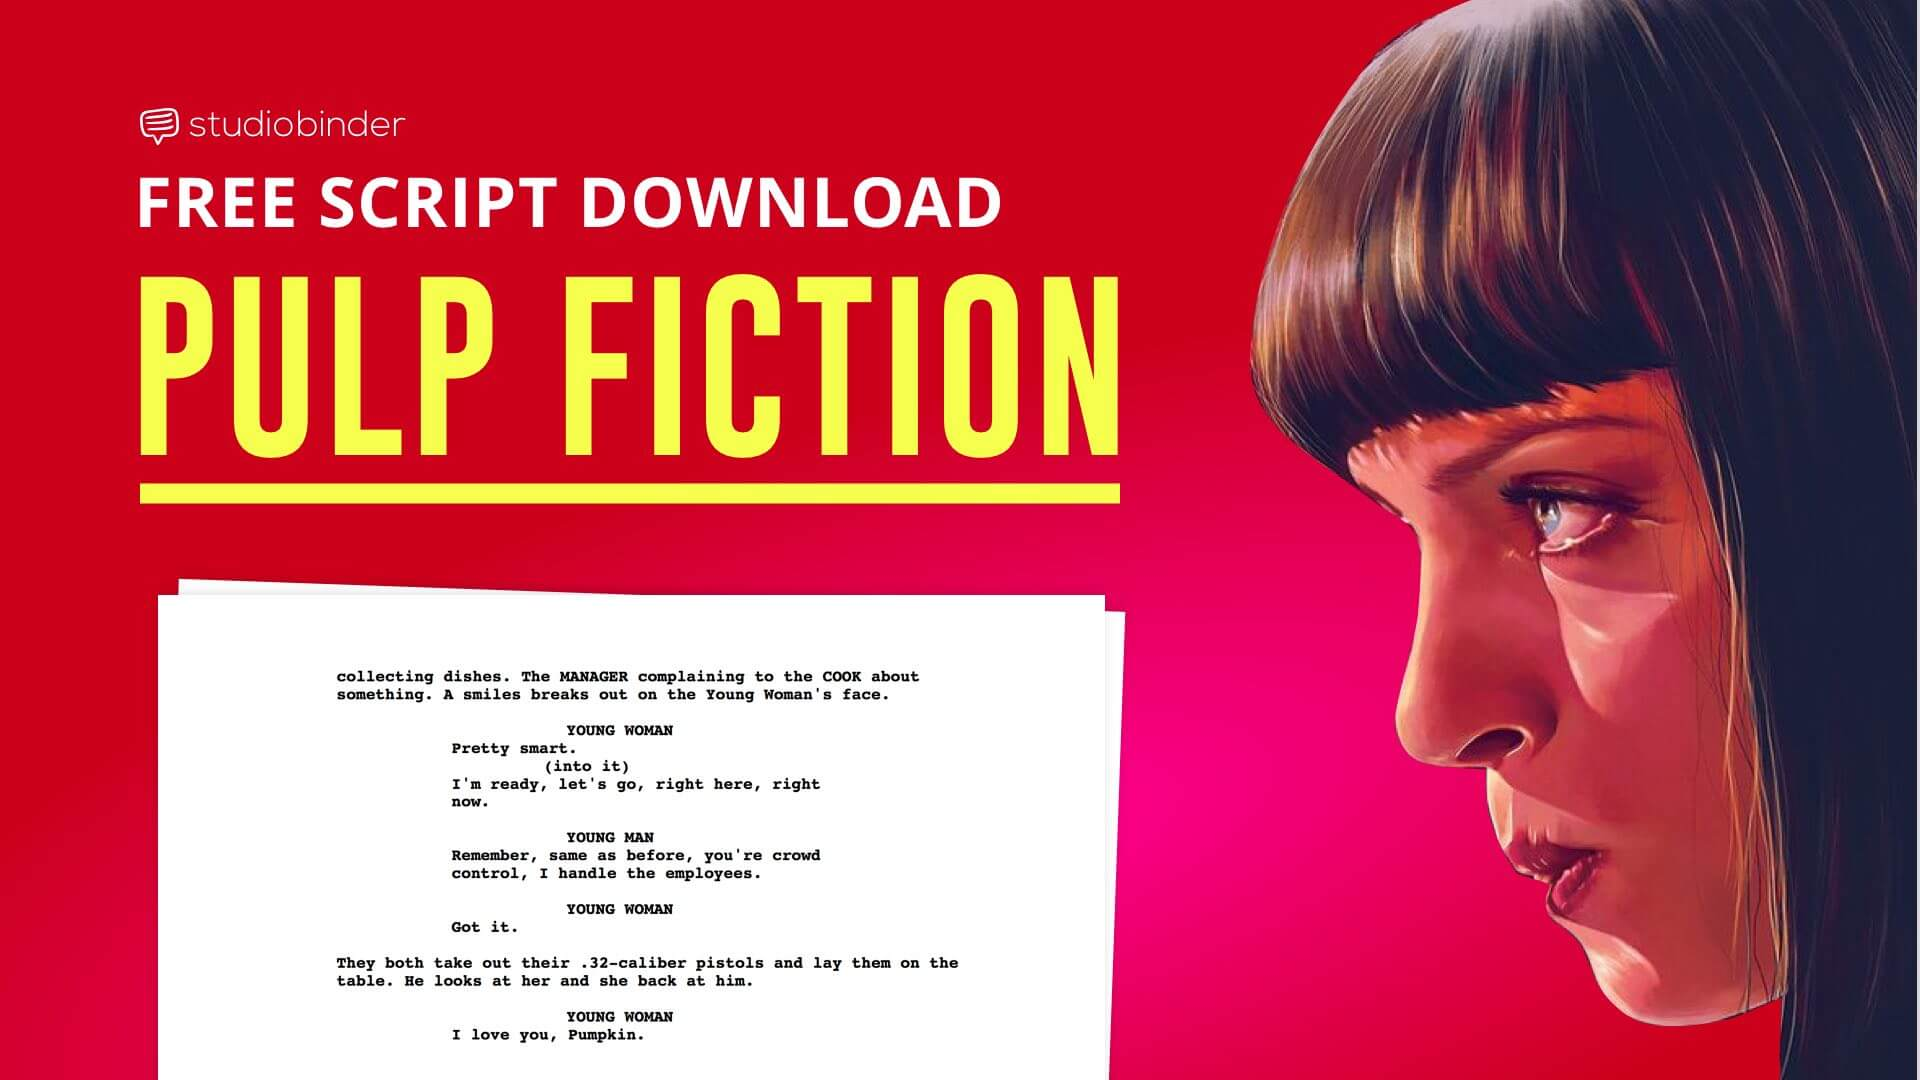 screenplay examples pulp fiction script free script download